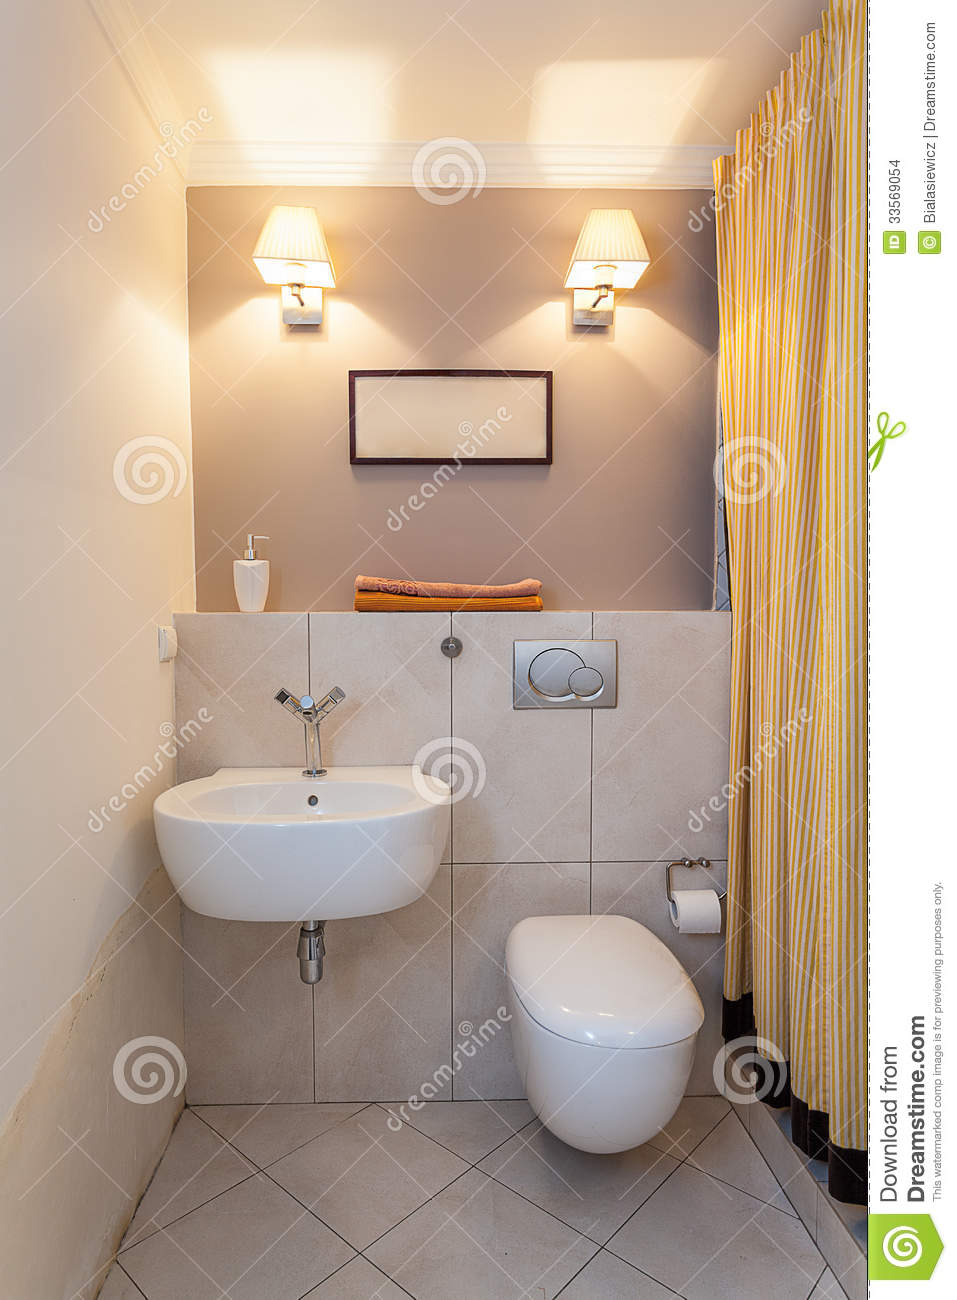 More similar stock images of ` Vintage mansion - water closet `